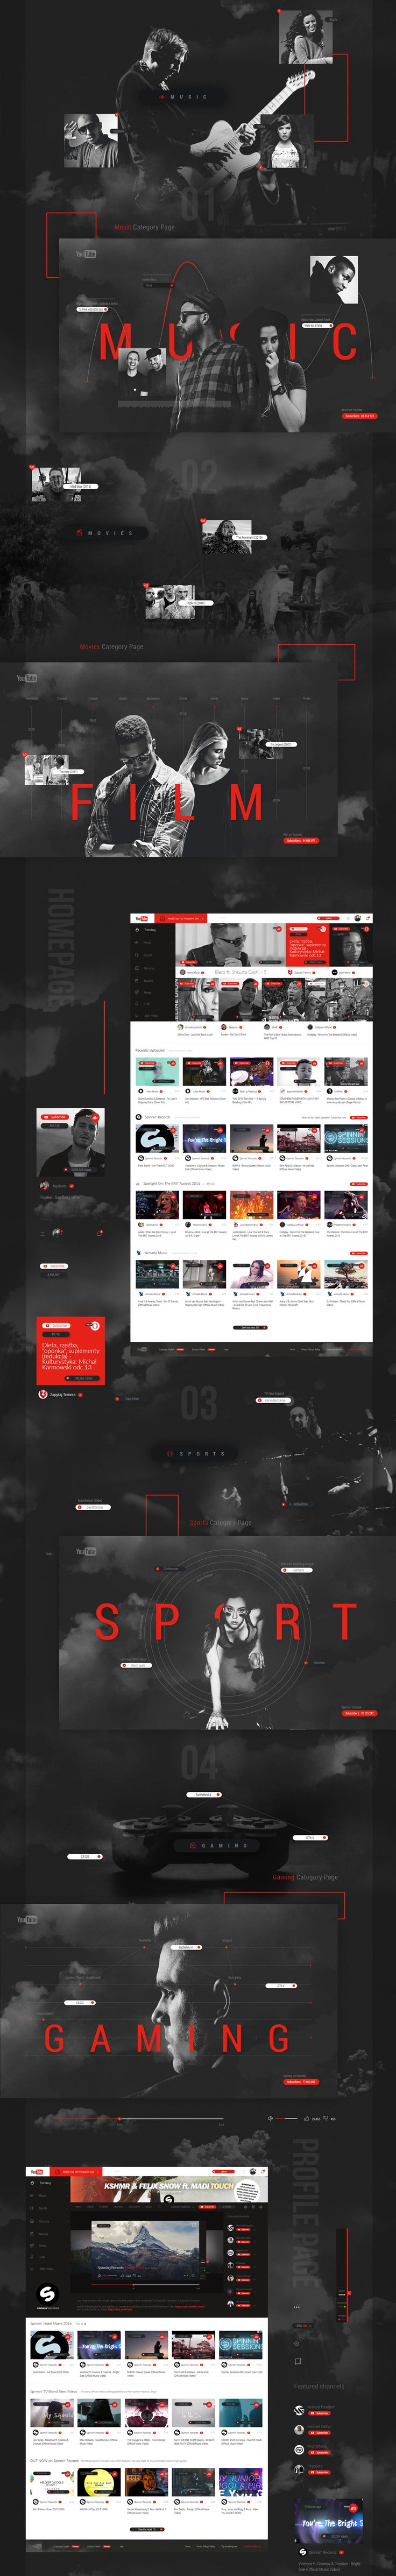 This is my personal Youtube Redesign Concept. This design wins Gold Muse Award od Muse Creative Awards 2016.